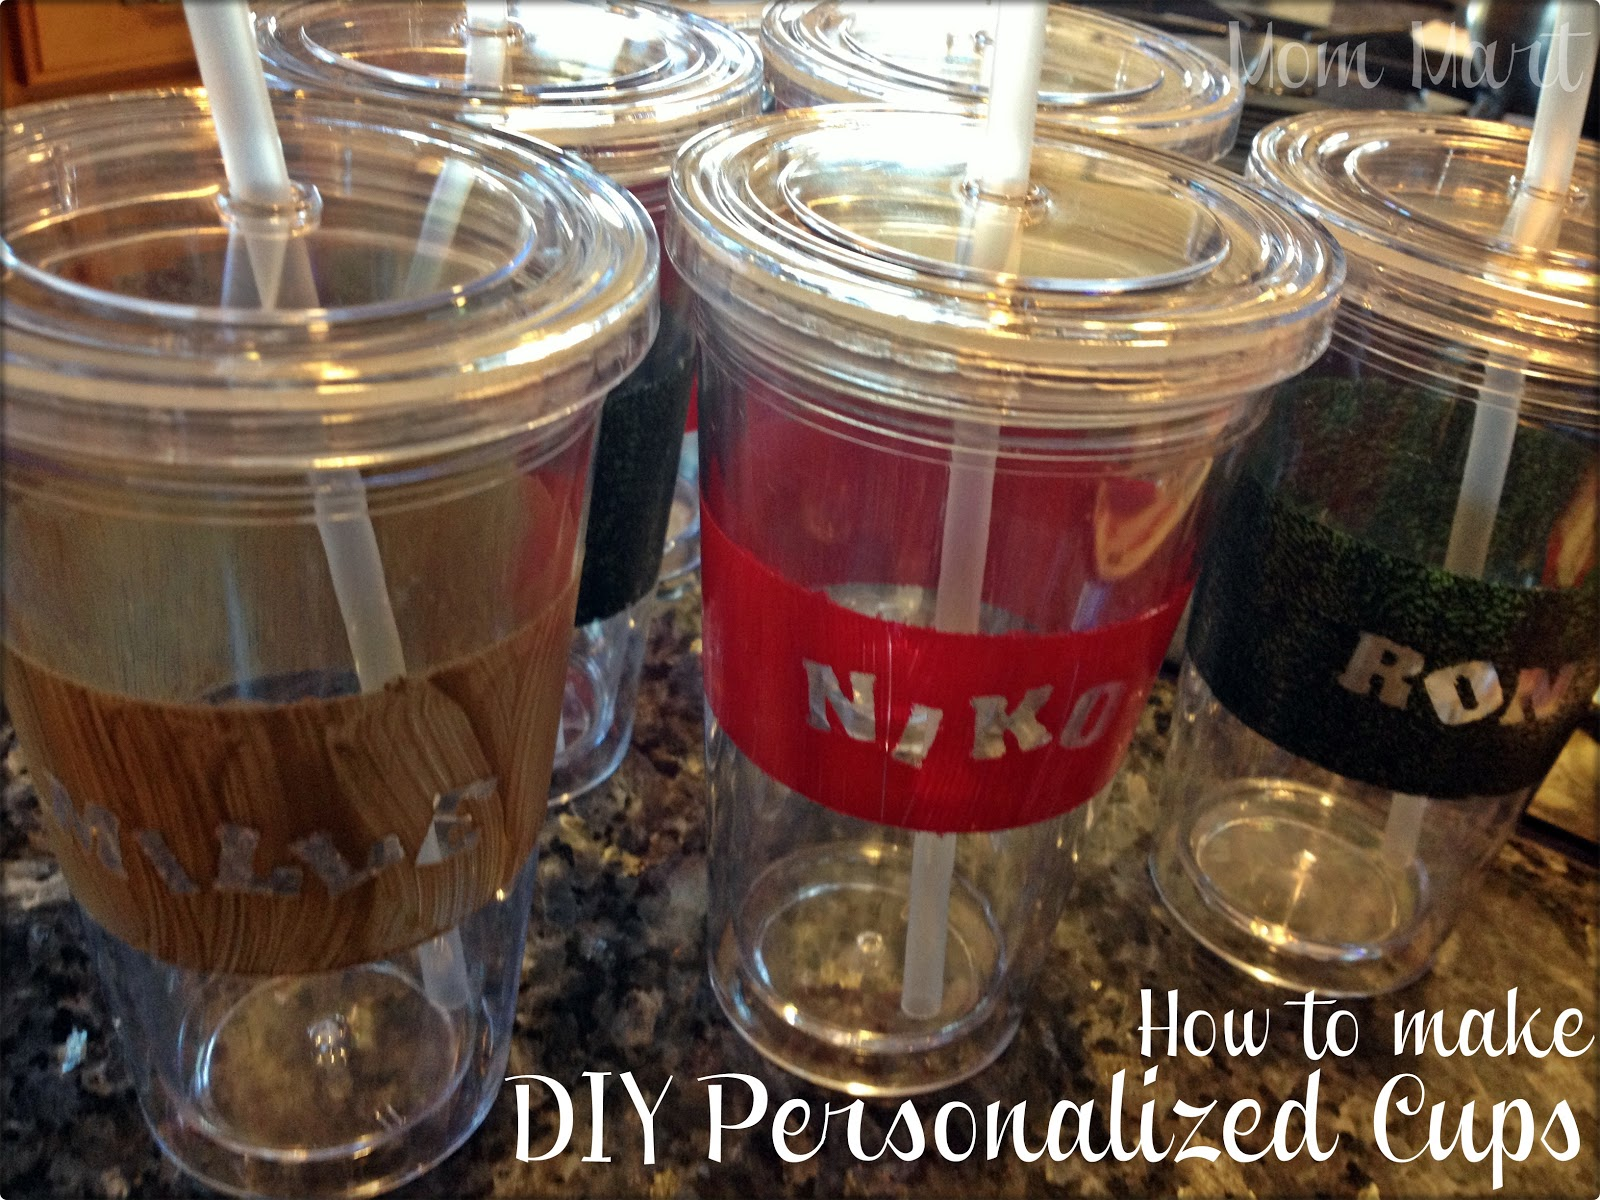 mom mart homemade gifts how to make diy personalized cups